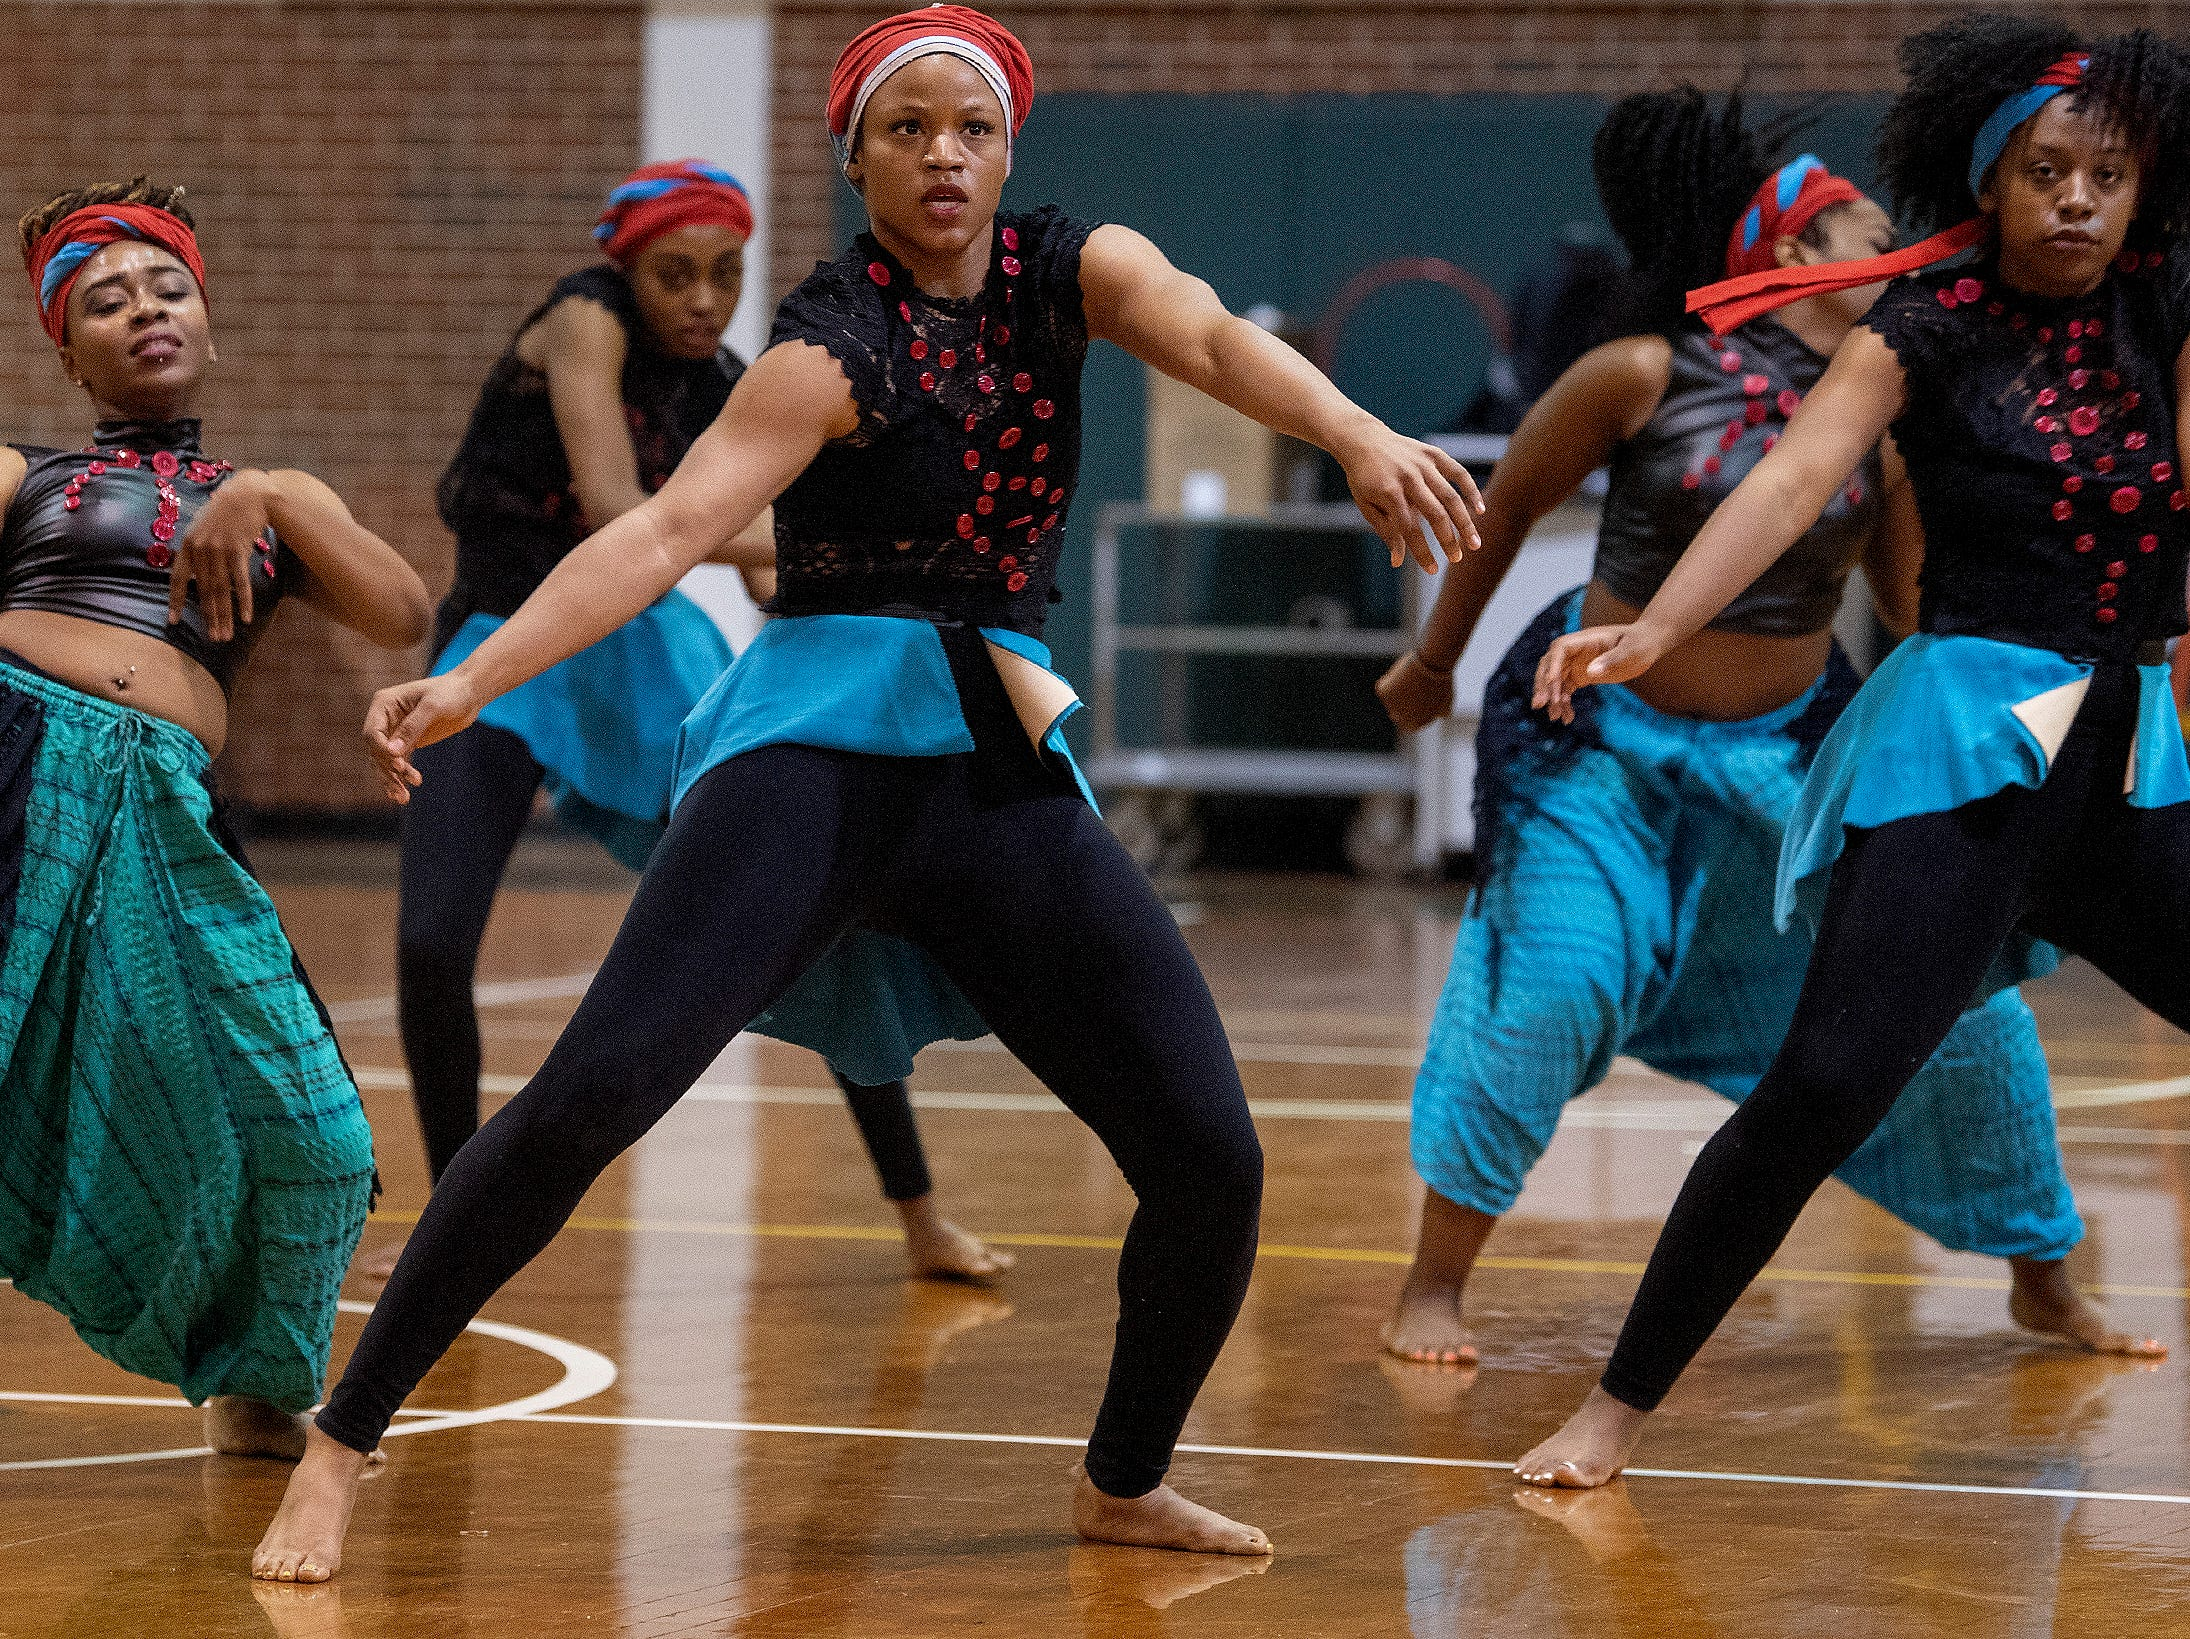 Alabama State University dancers perform during the ASU President's Tour visit at Jeff Davis High School in Montgomery, Ala., on Friday April 12, 2019.